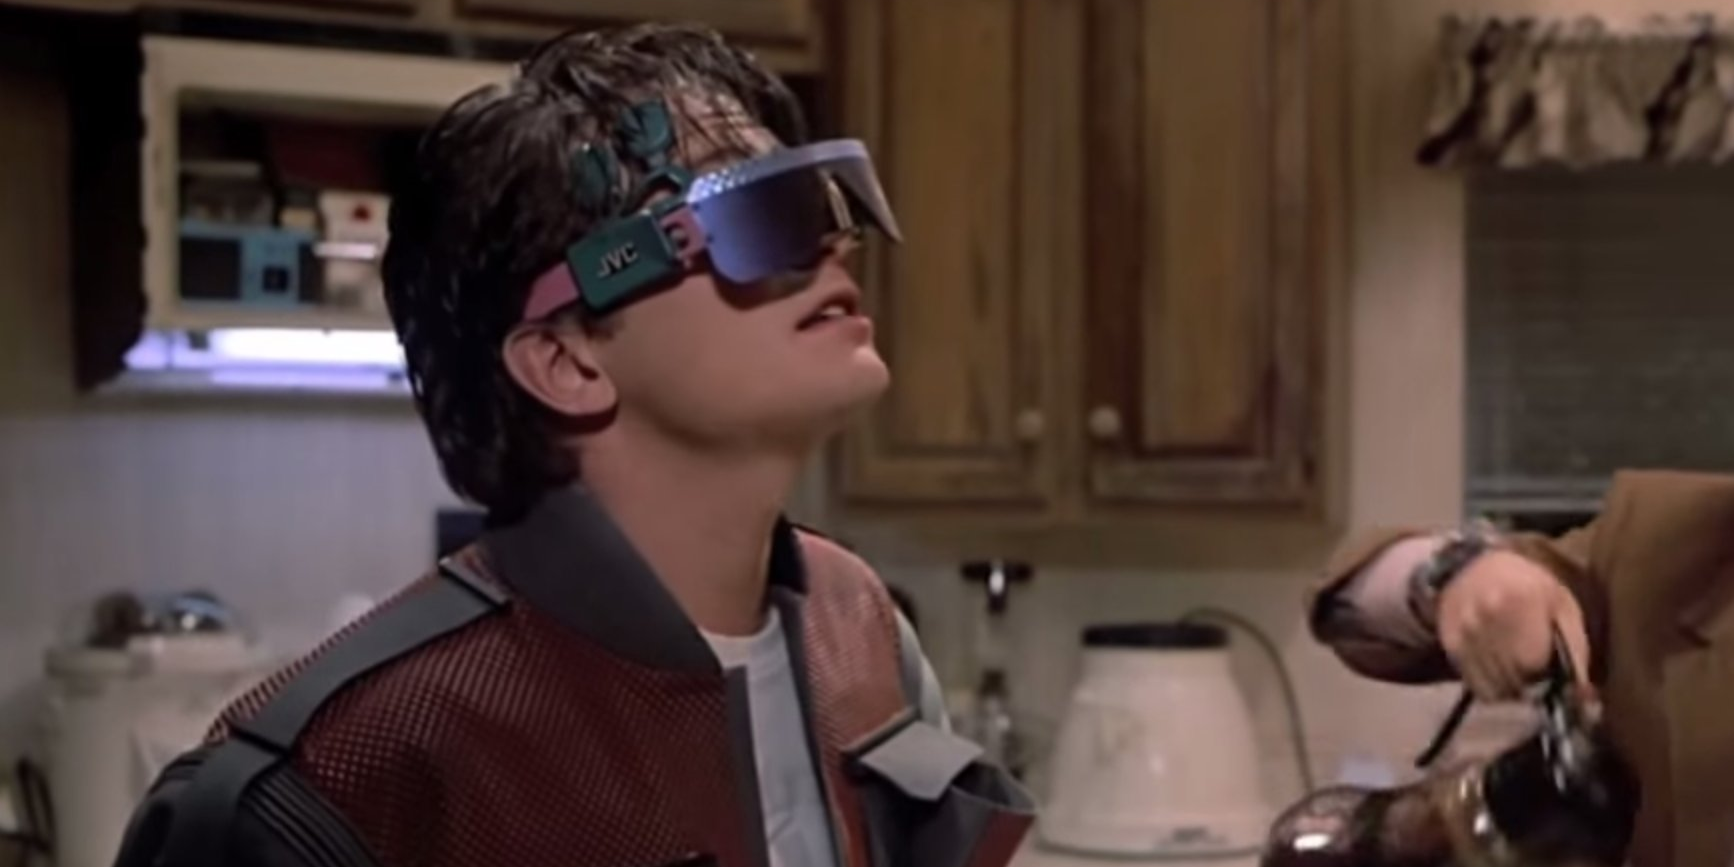 BackToTheFuture Glasses